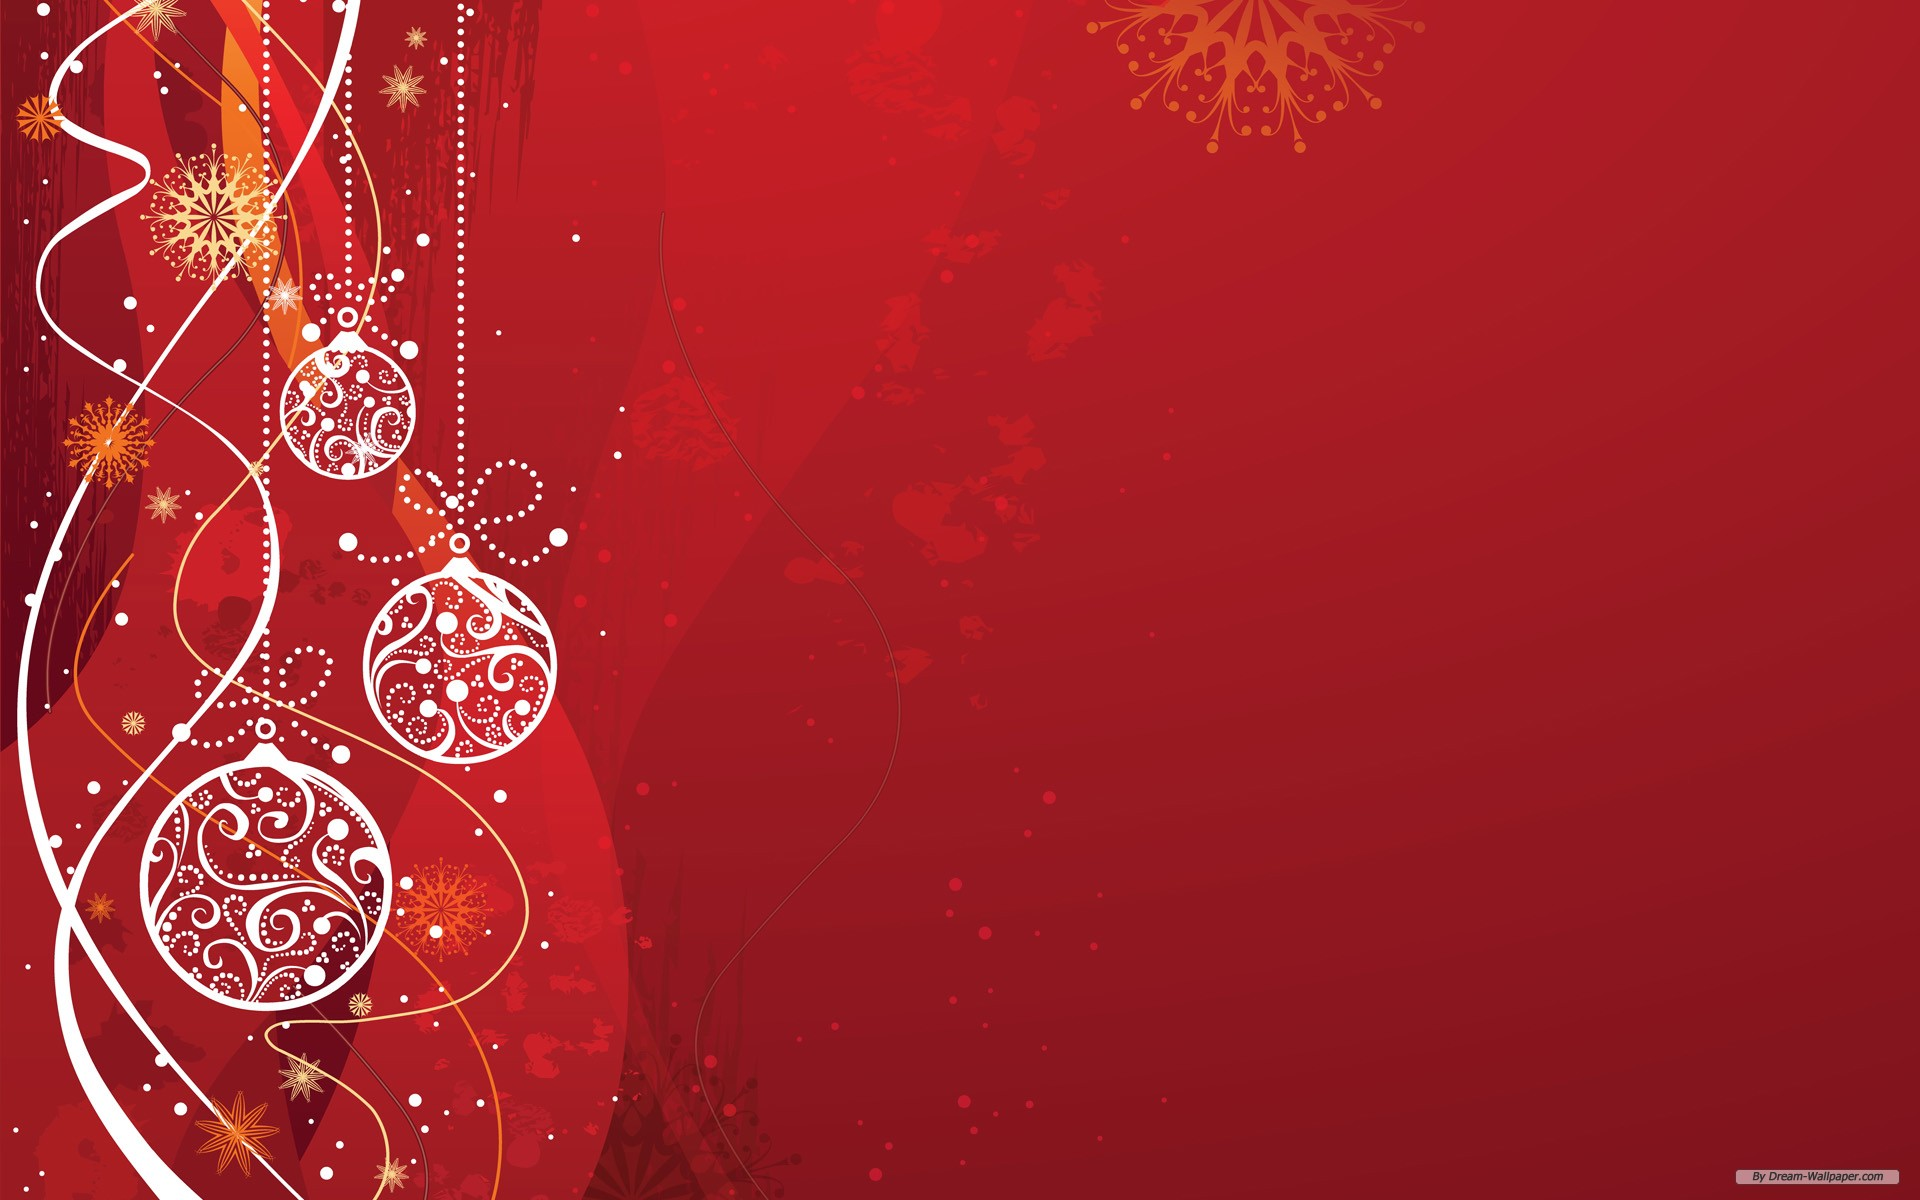 free xmas wallpaper desktop themes - wallpapersafari